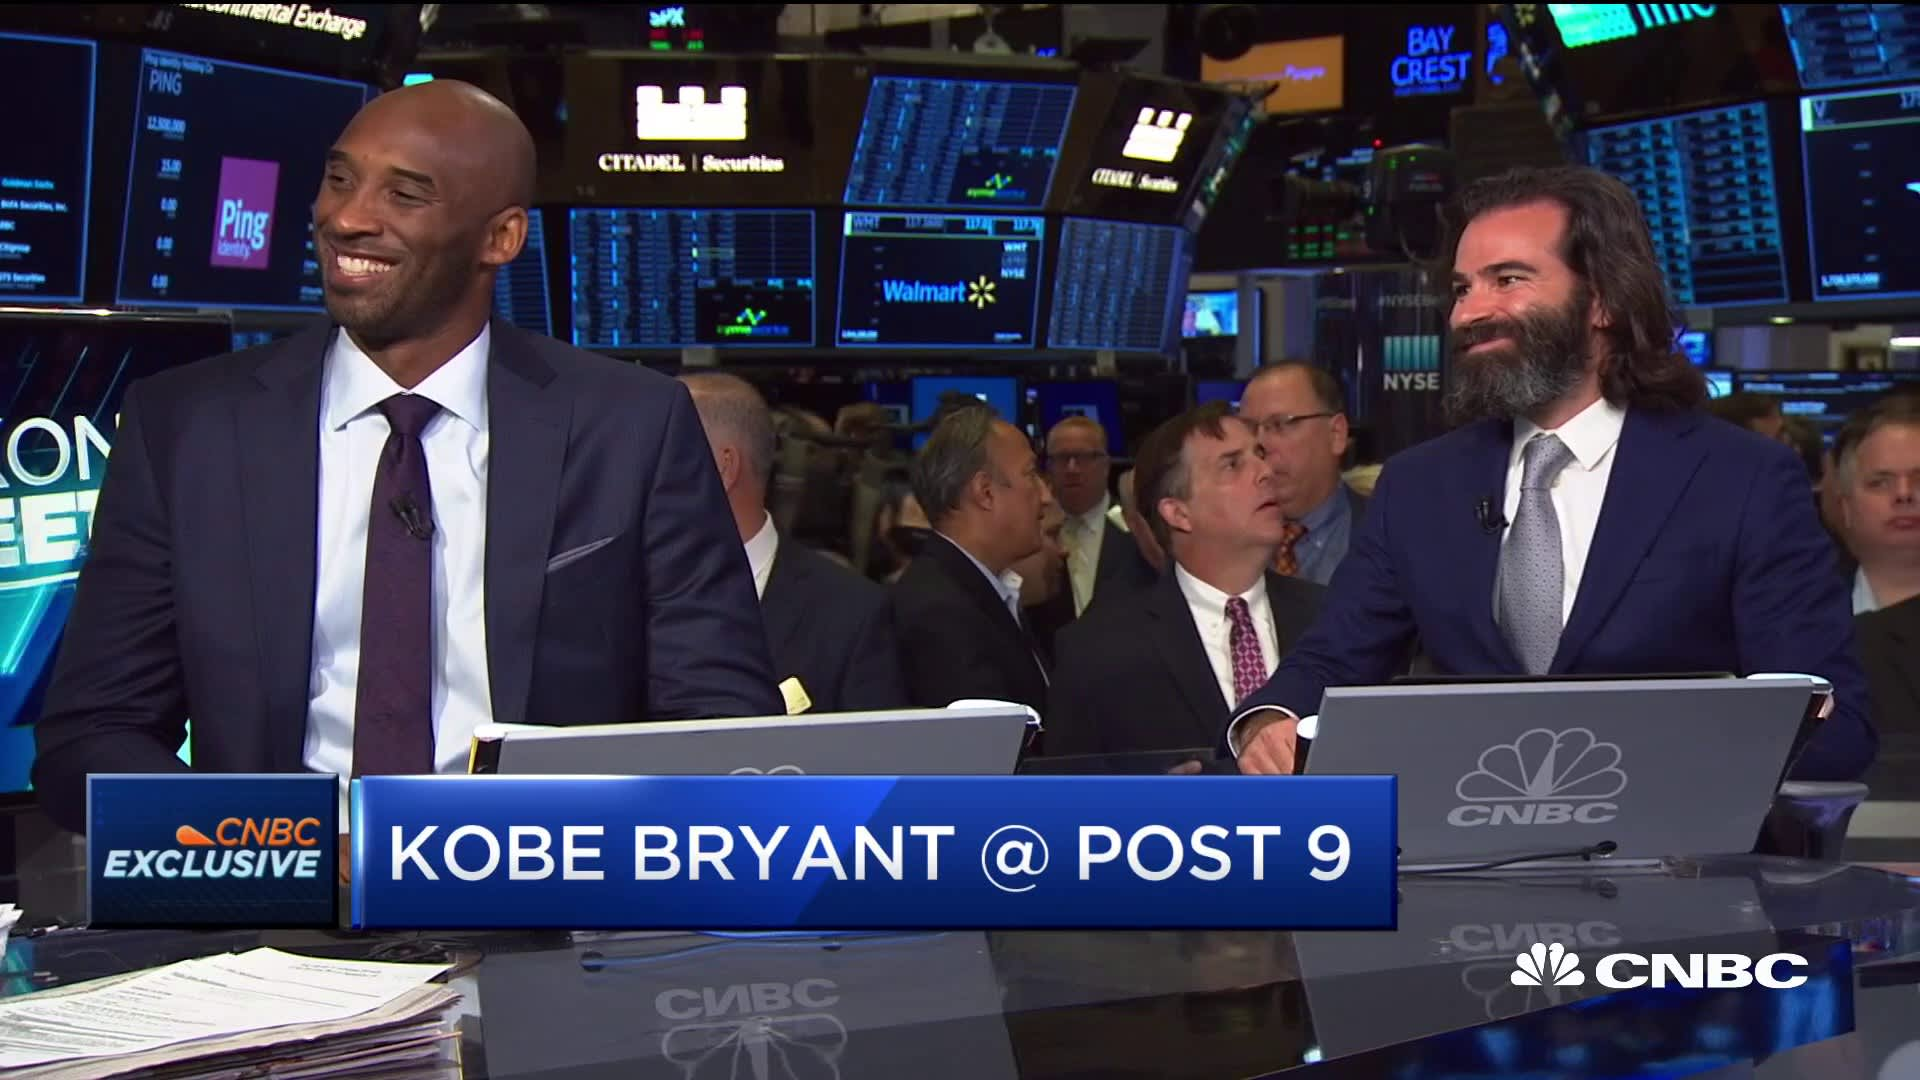 Kobe Bryant And Jeff Stibel On The Growth Of Their Venture Capital Fund